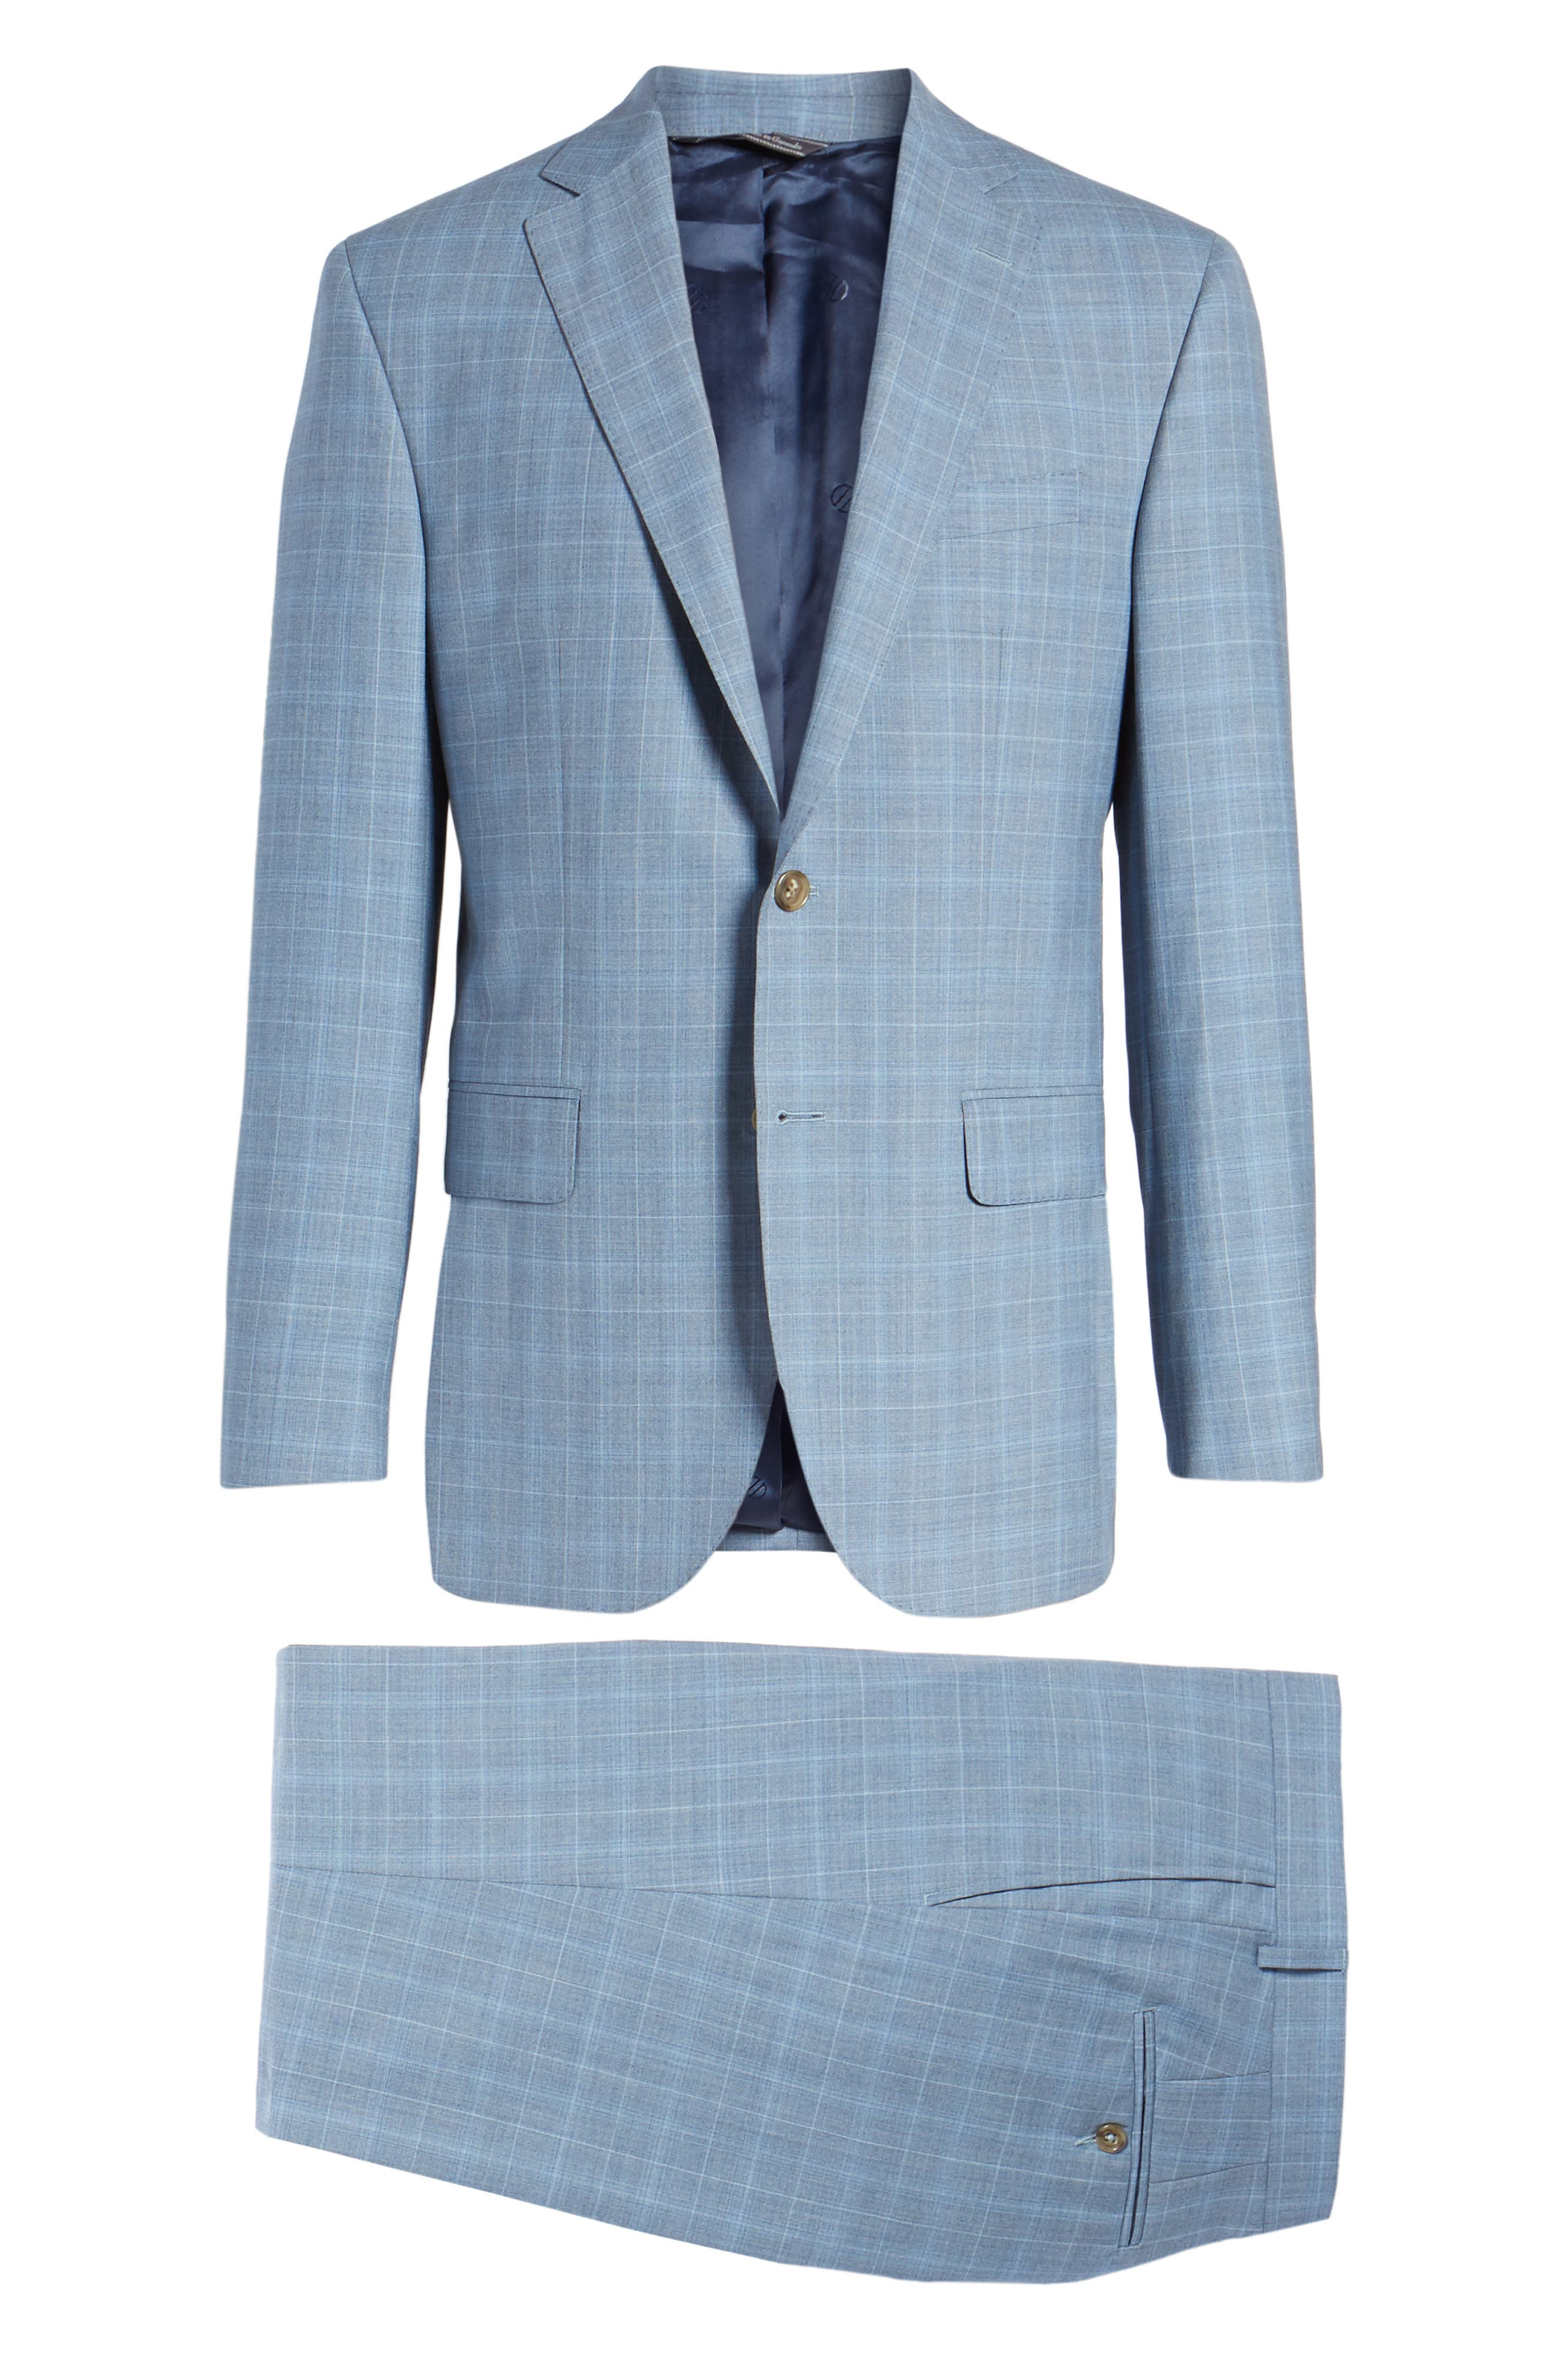 Ryan Classic Fit Plaid Wool Suit,                             Alternate thumbnail 8, color,                             400